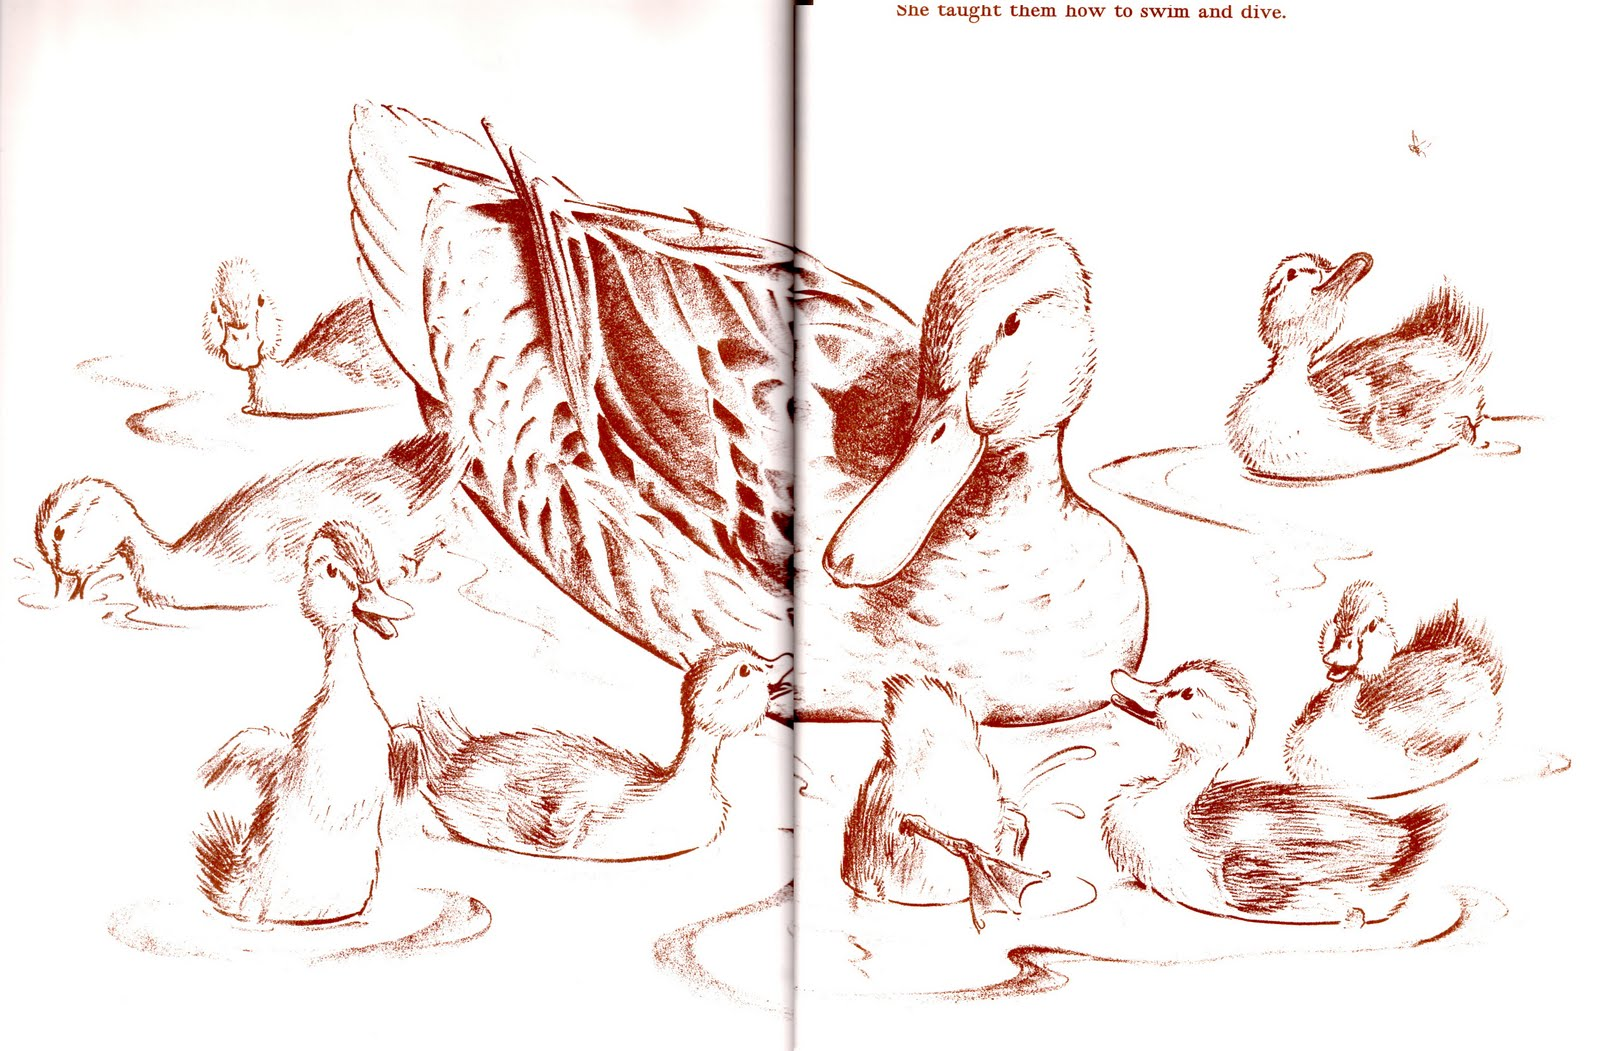 Make+way+for+ducklings+coloring+pages